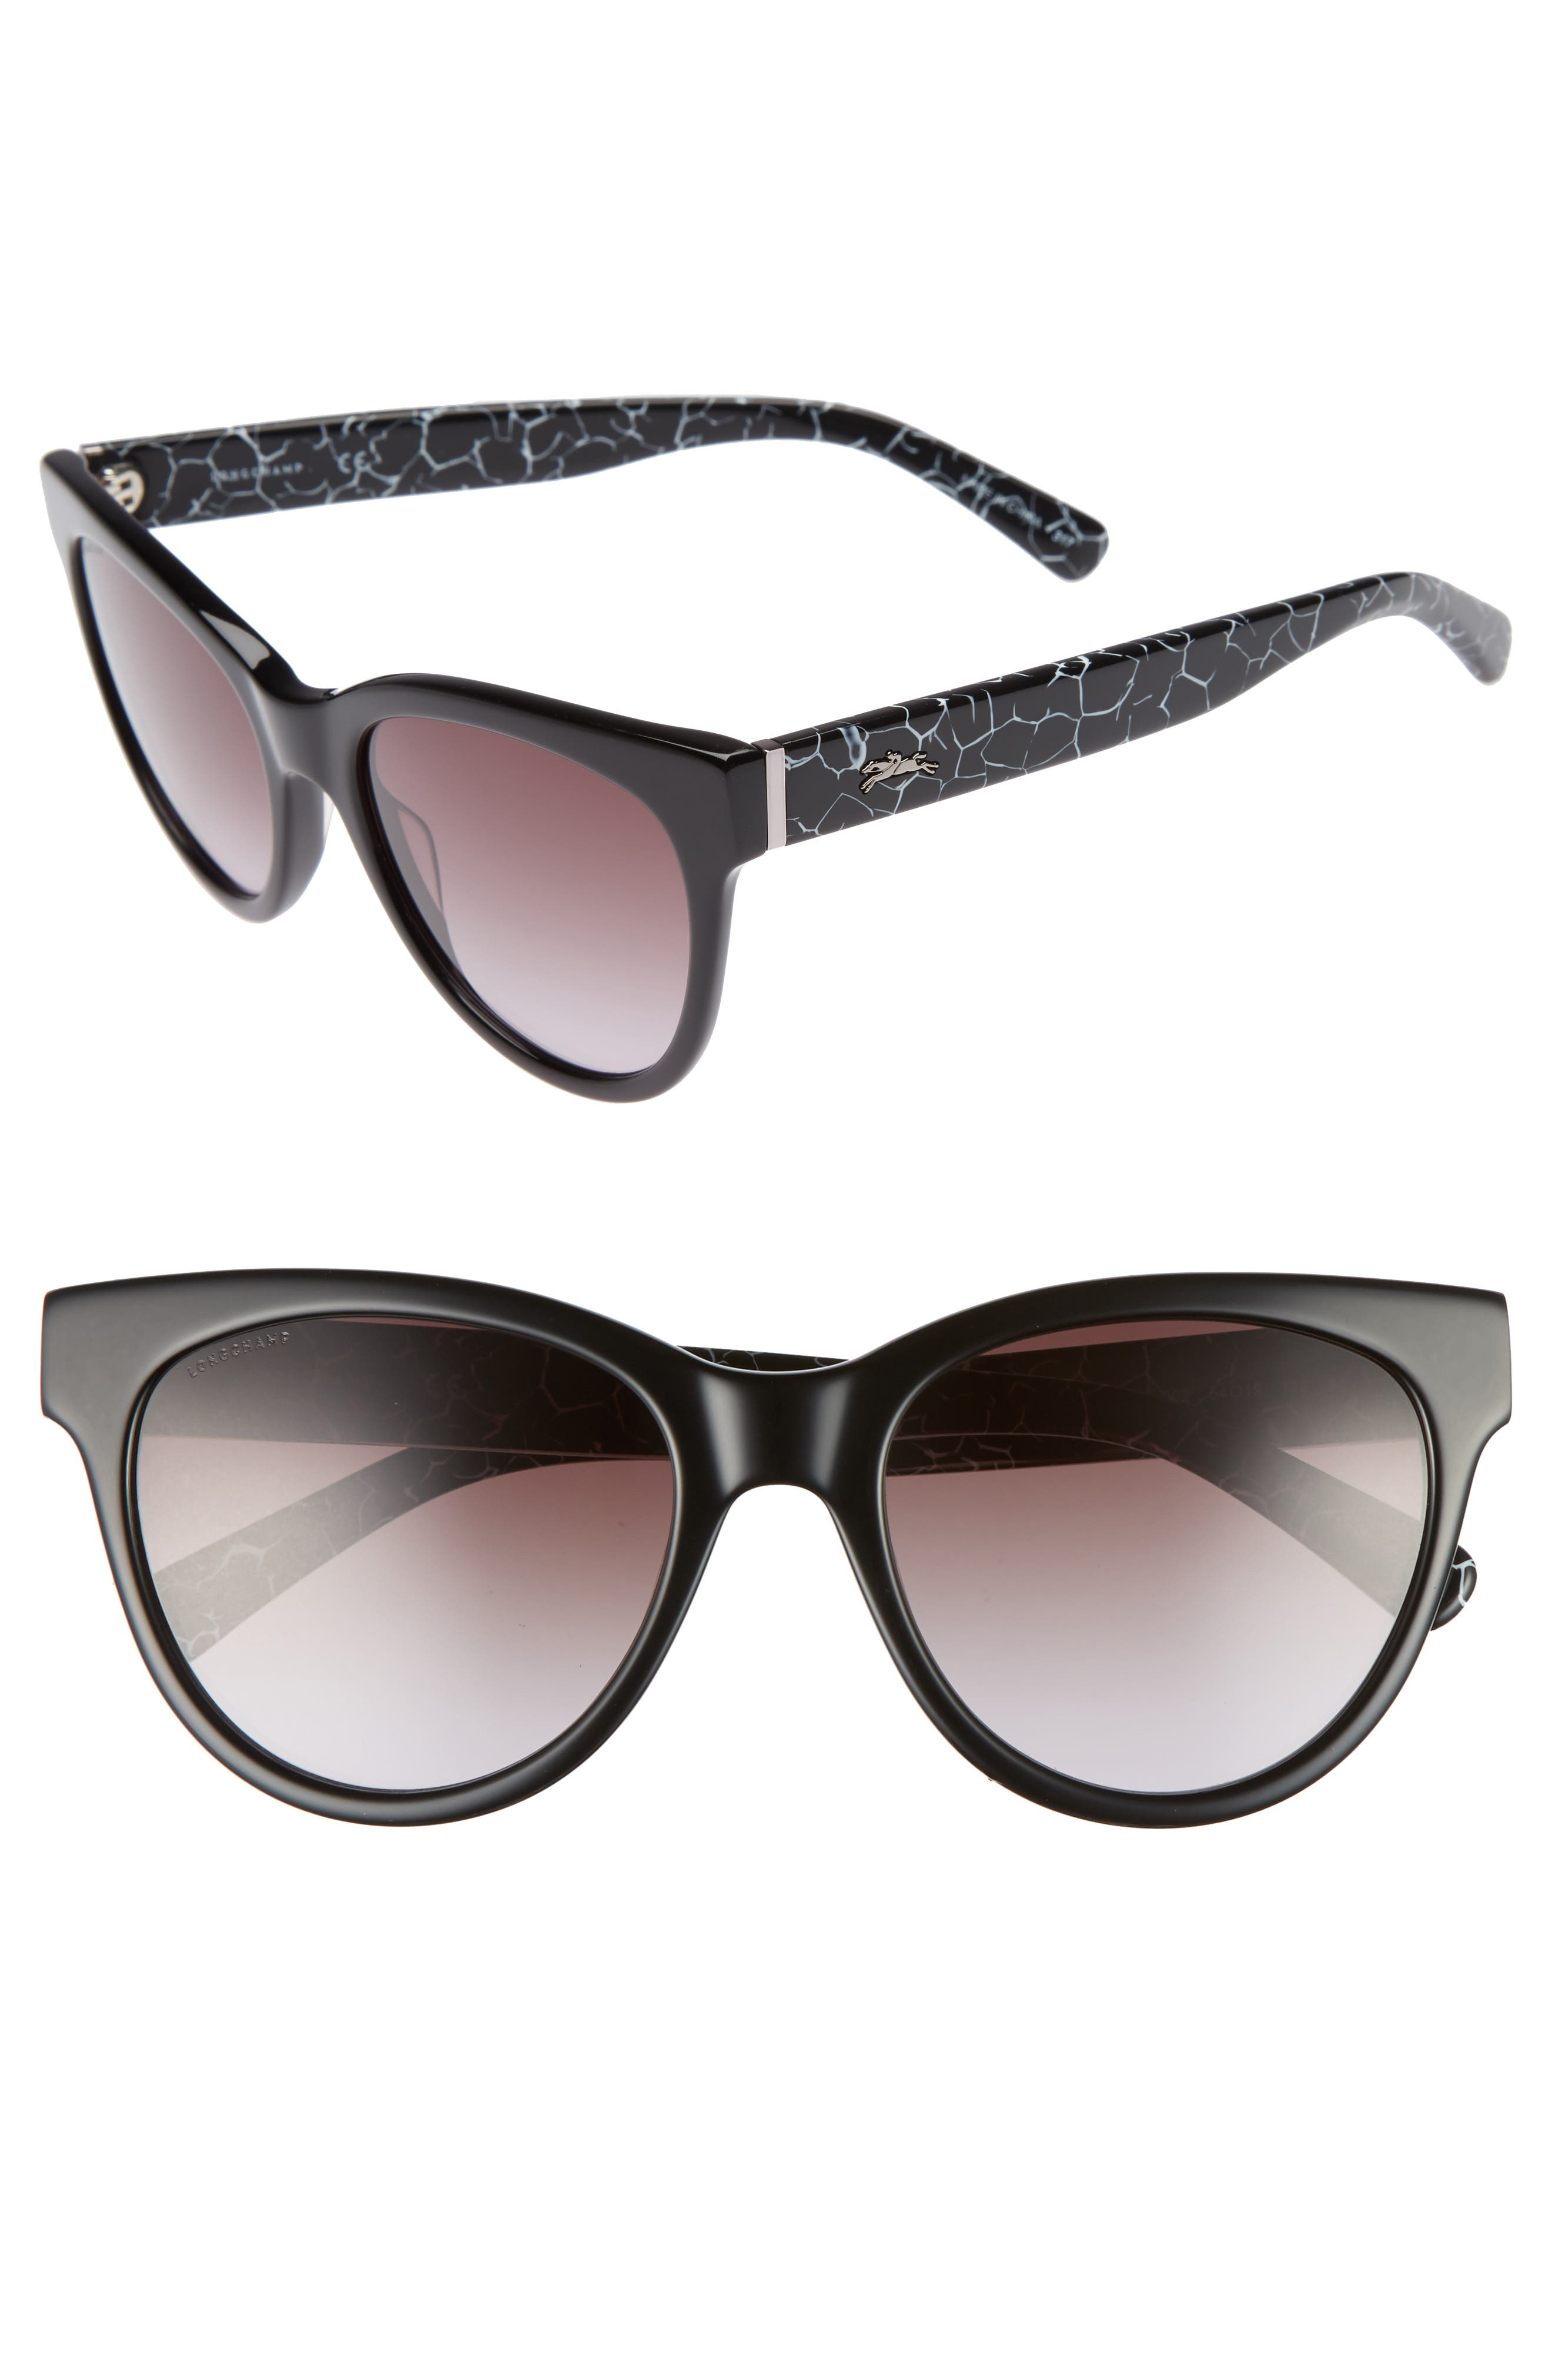 Longchamp 54mm Gradient Lens Cat Eye Sunglasses